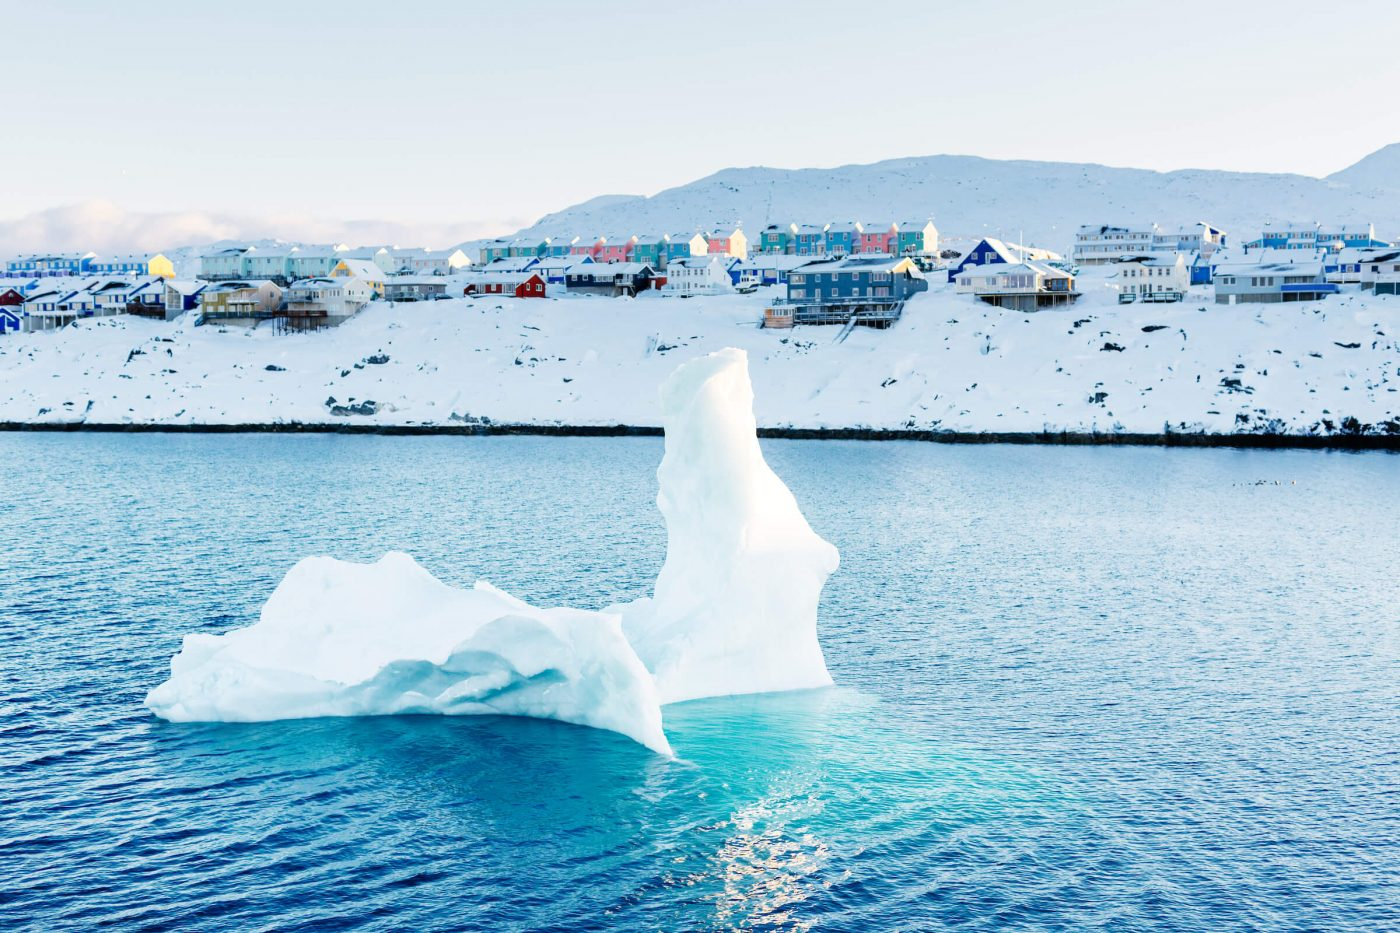 Small iceberg floating in the water in front of the houses of Nussuaq in Nuuk in Greenland